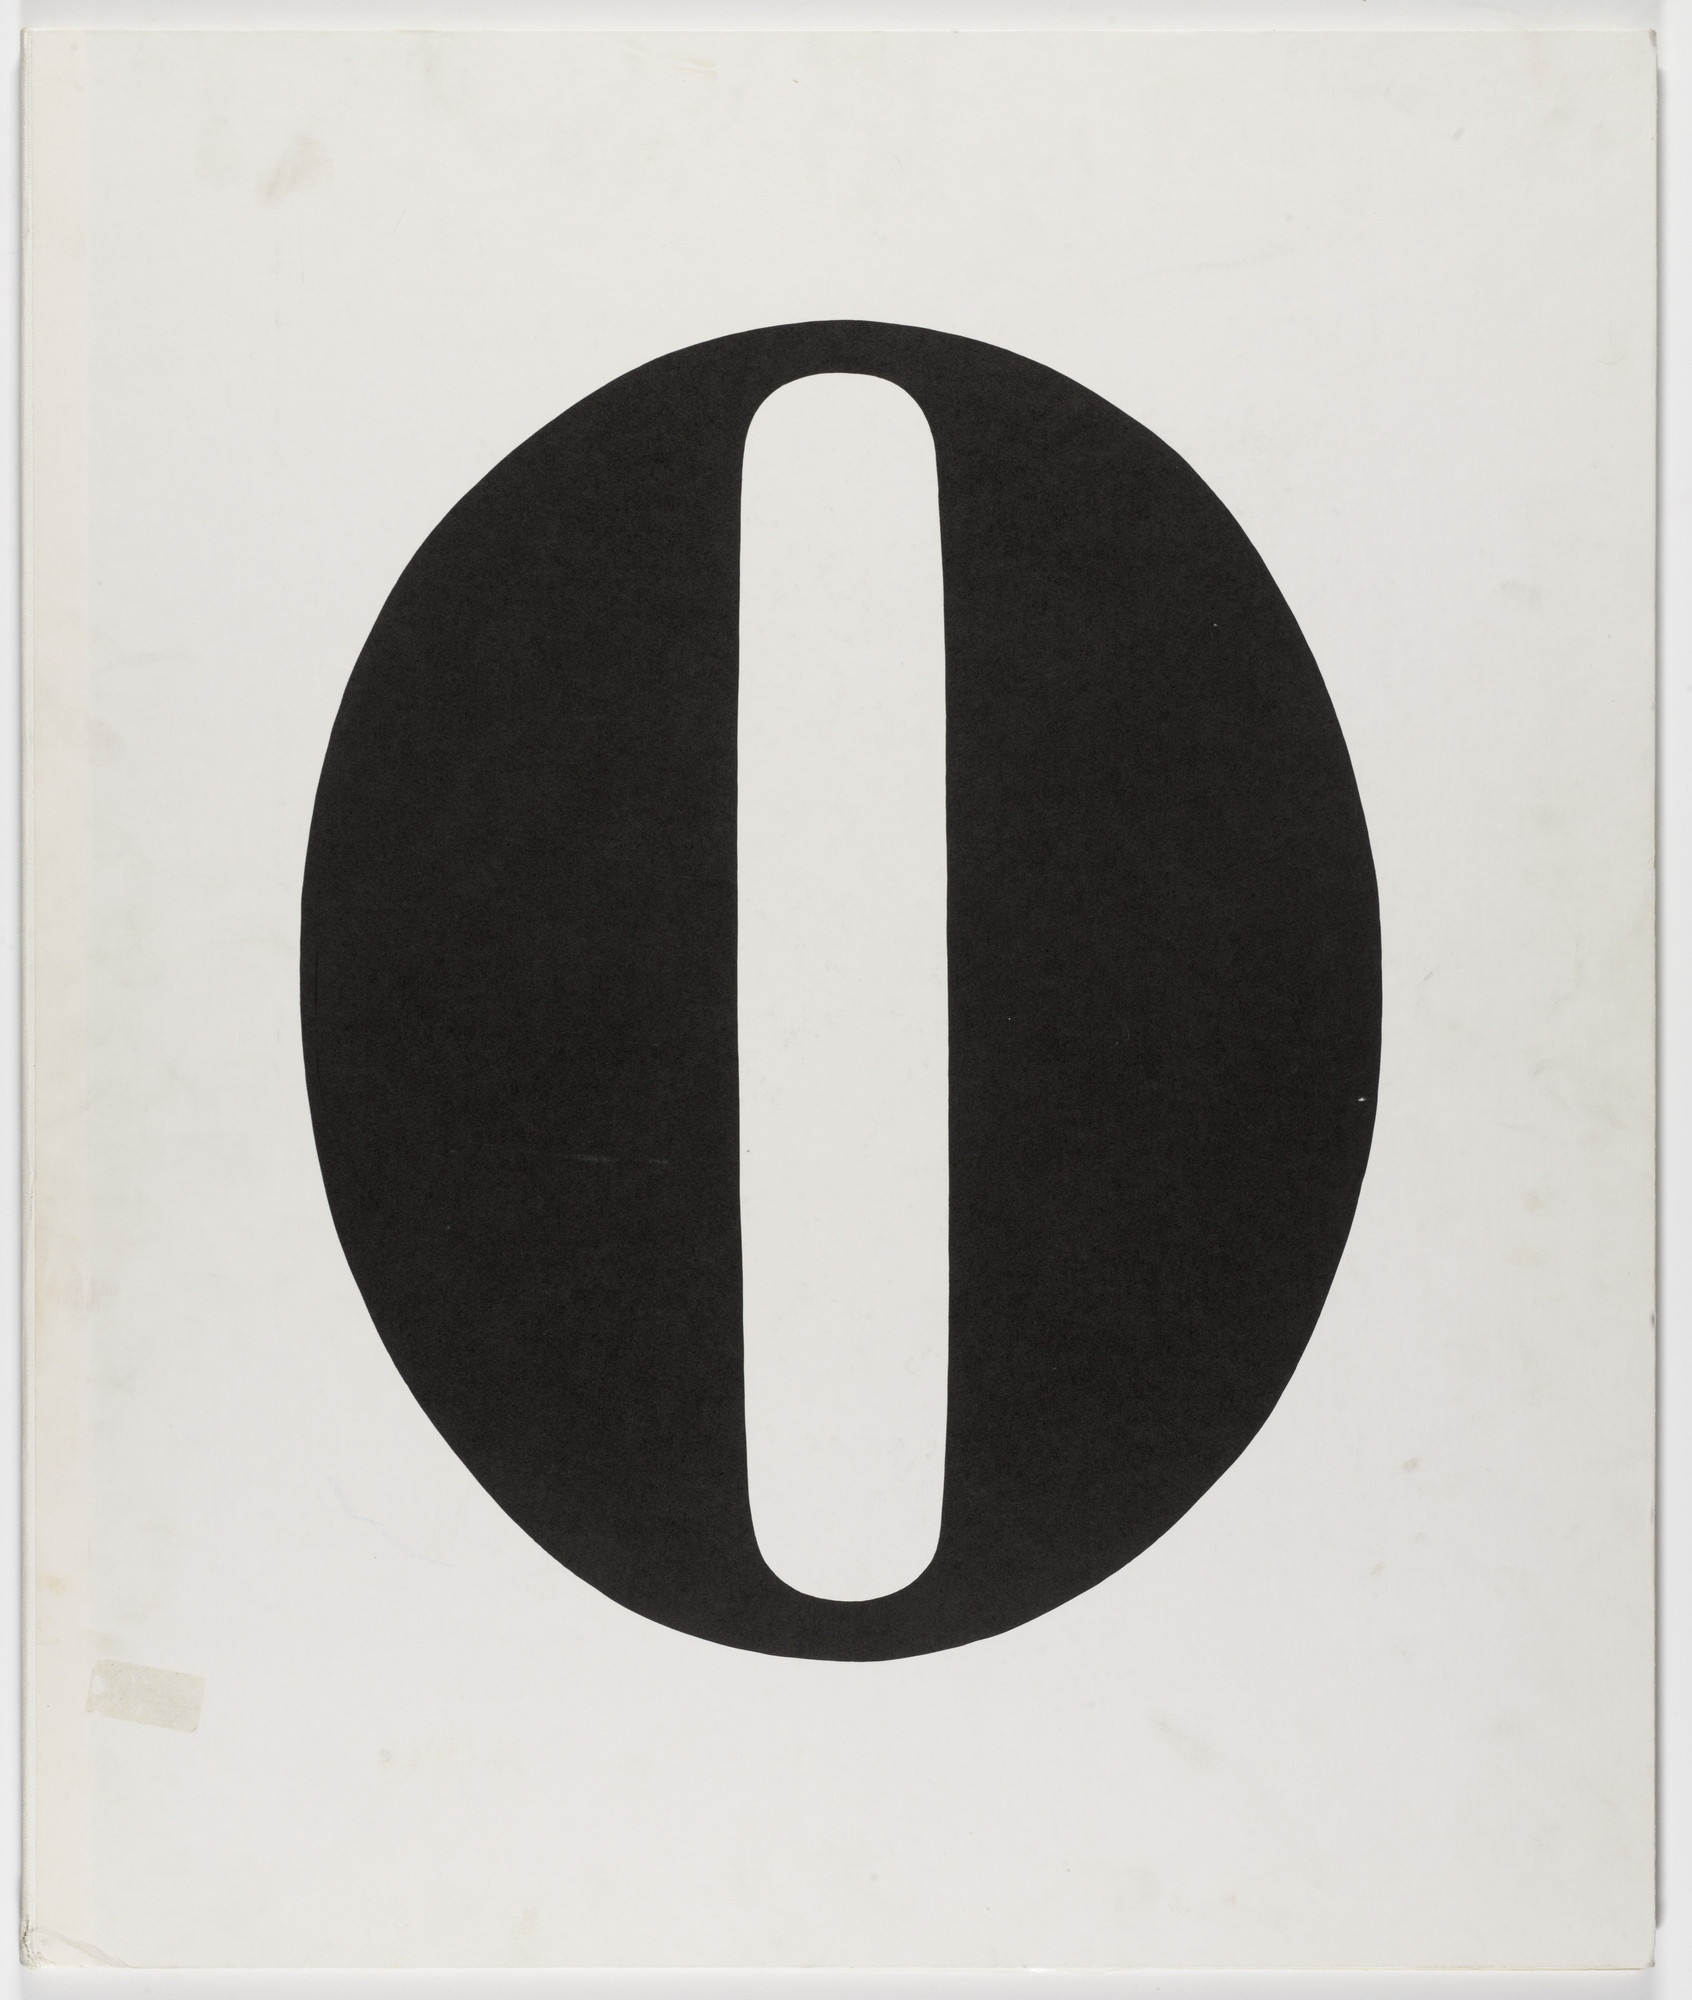 Various Artists, Günther Uecker, Otto Piene, Heinz Mack. Zero. 1966